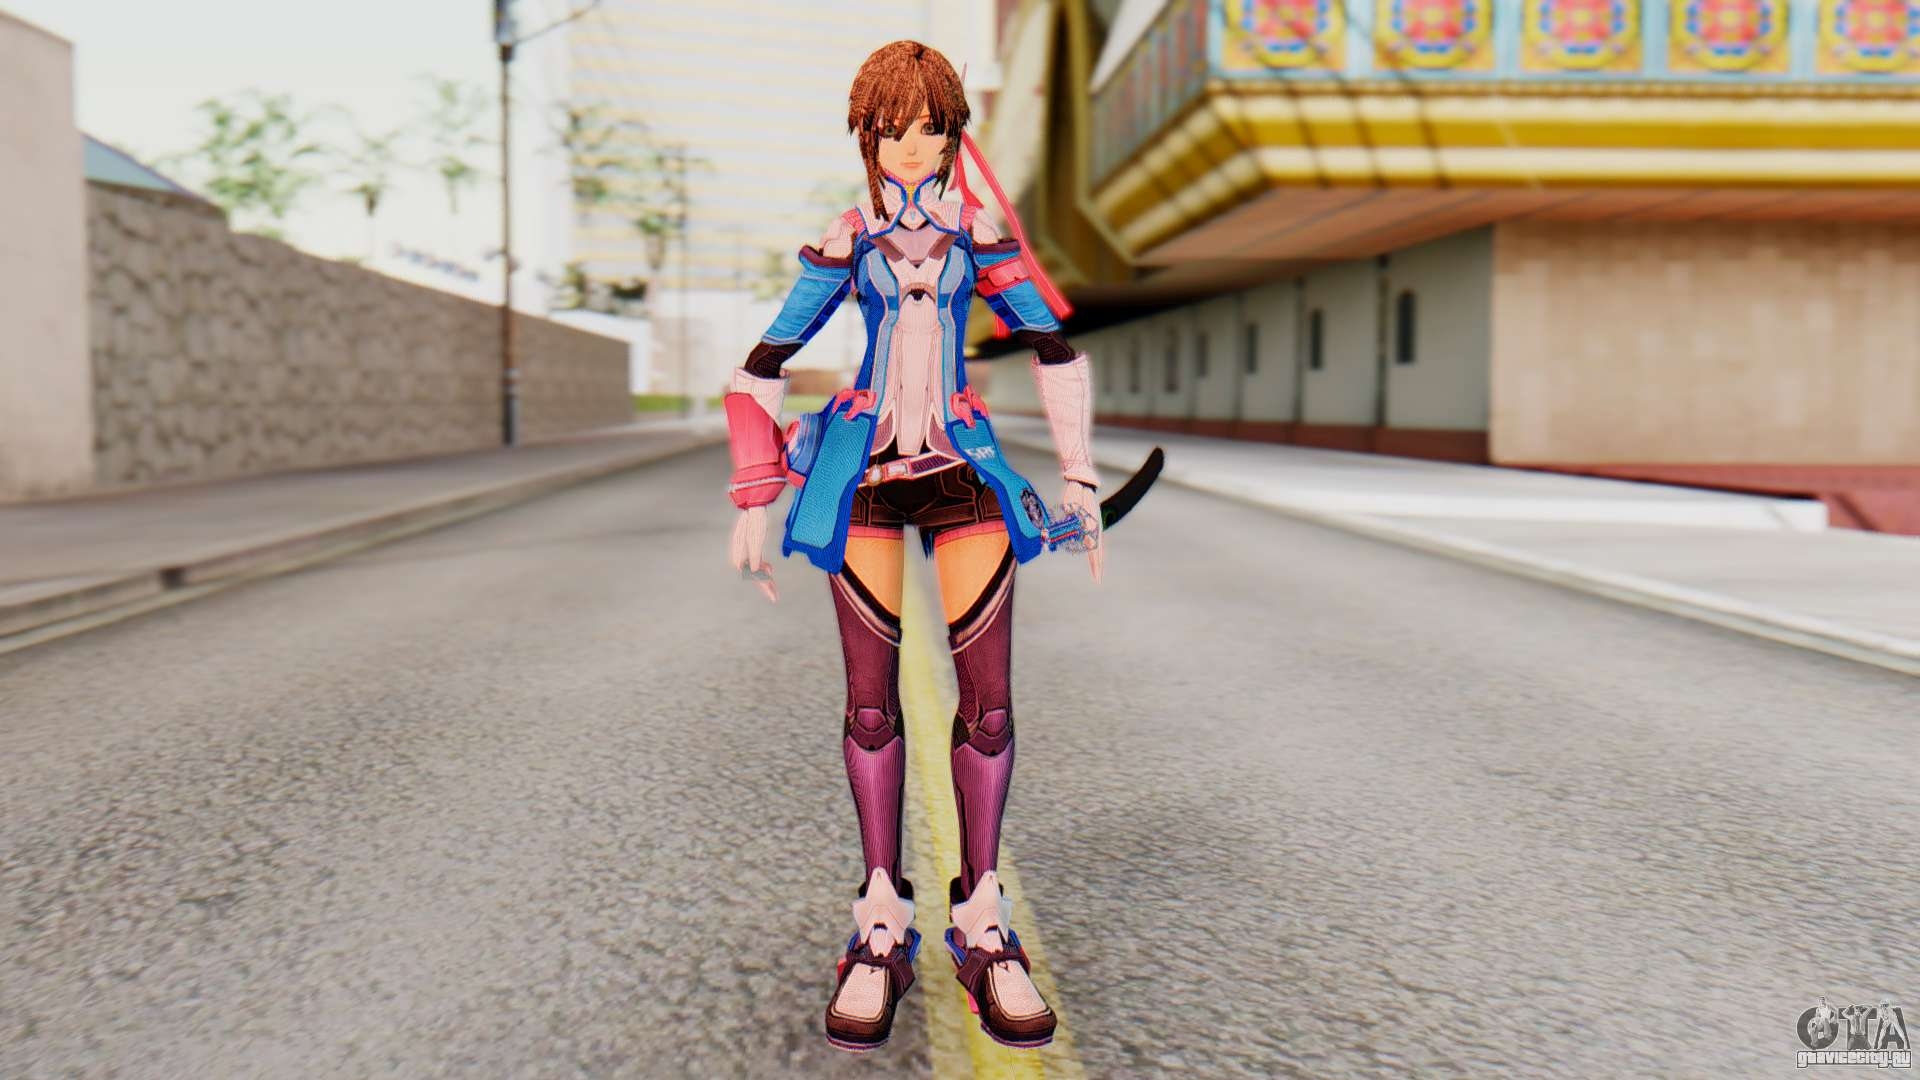 Hot anime girl skin for gta sa fucked pictures